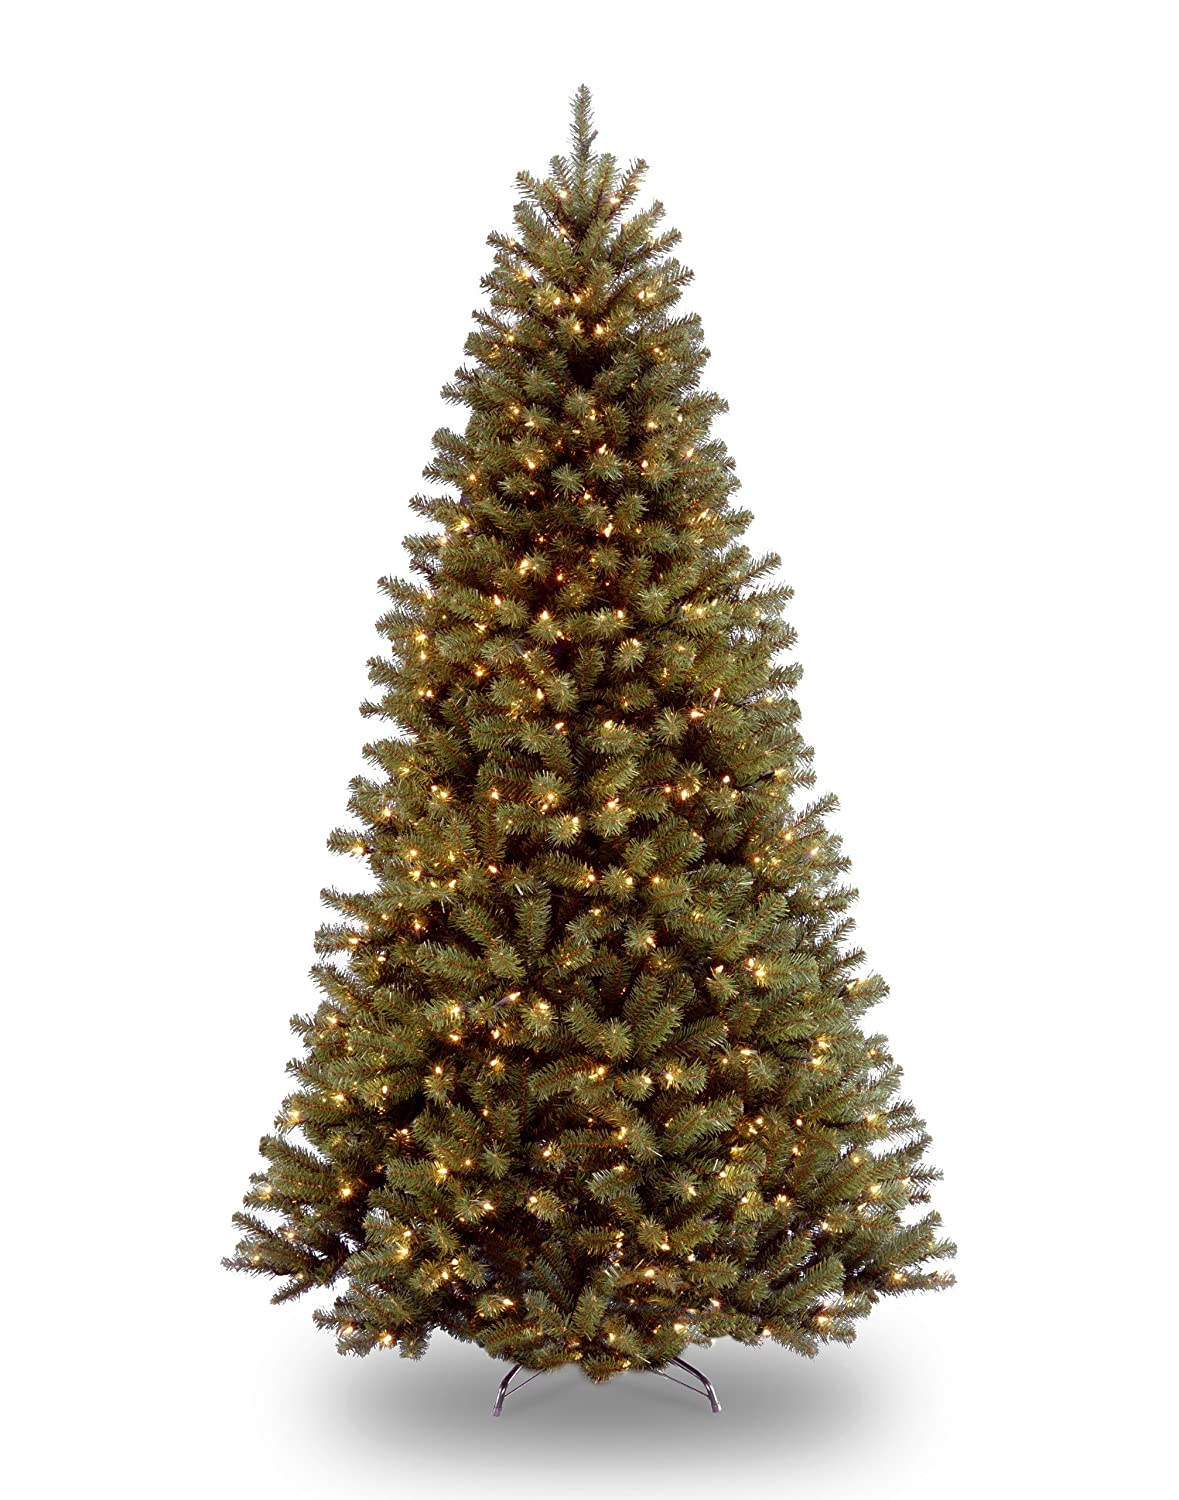 Amazon.com: National Tree 7.5 Foot North Valley Spruce Tree with 550 ...